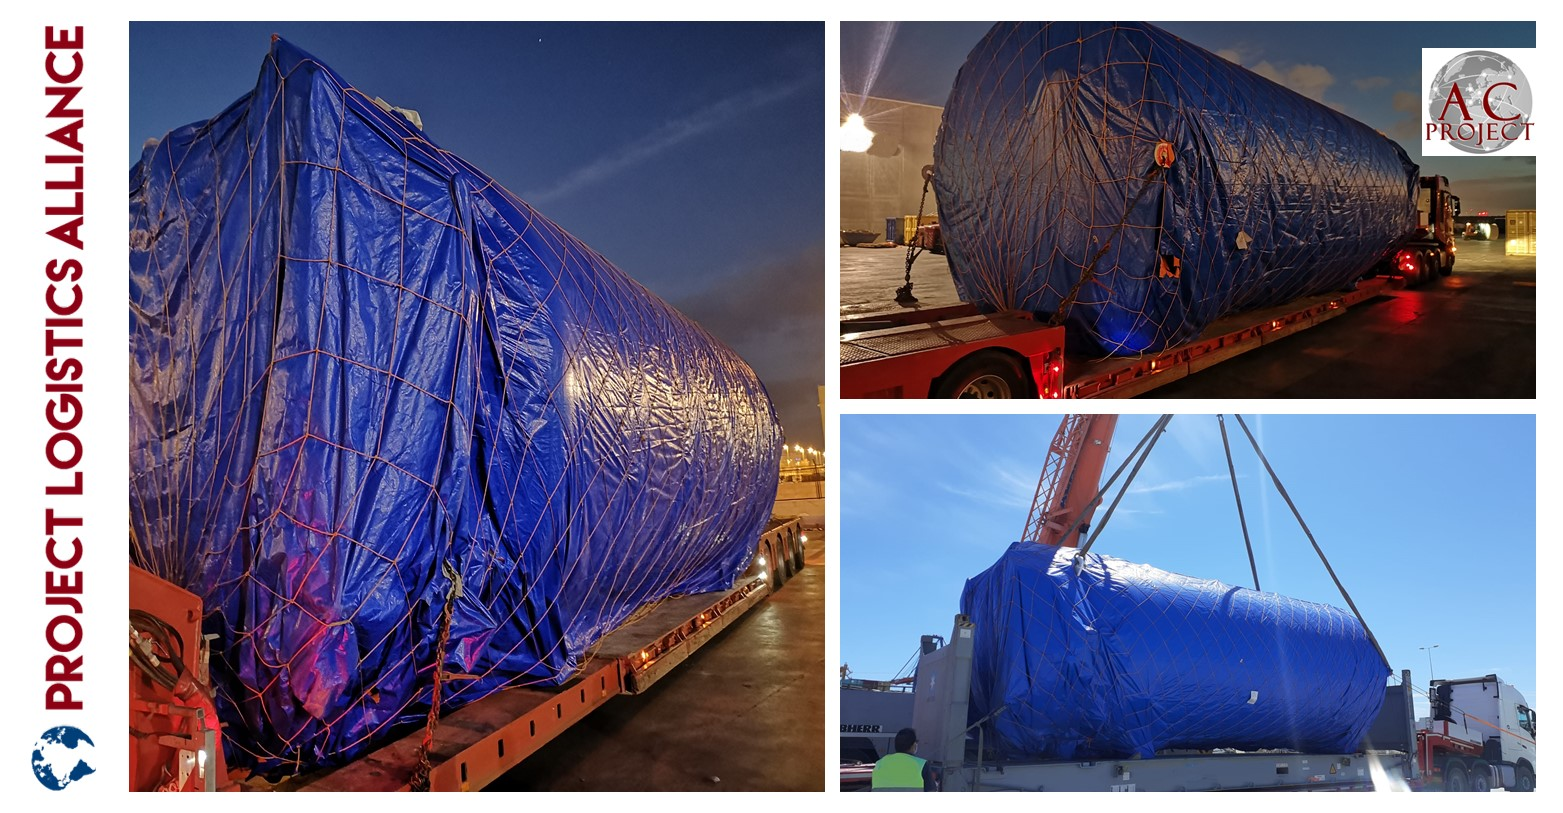 AC Projects Unloads Cryogenic Tanks Under The Weather